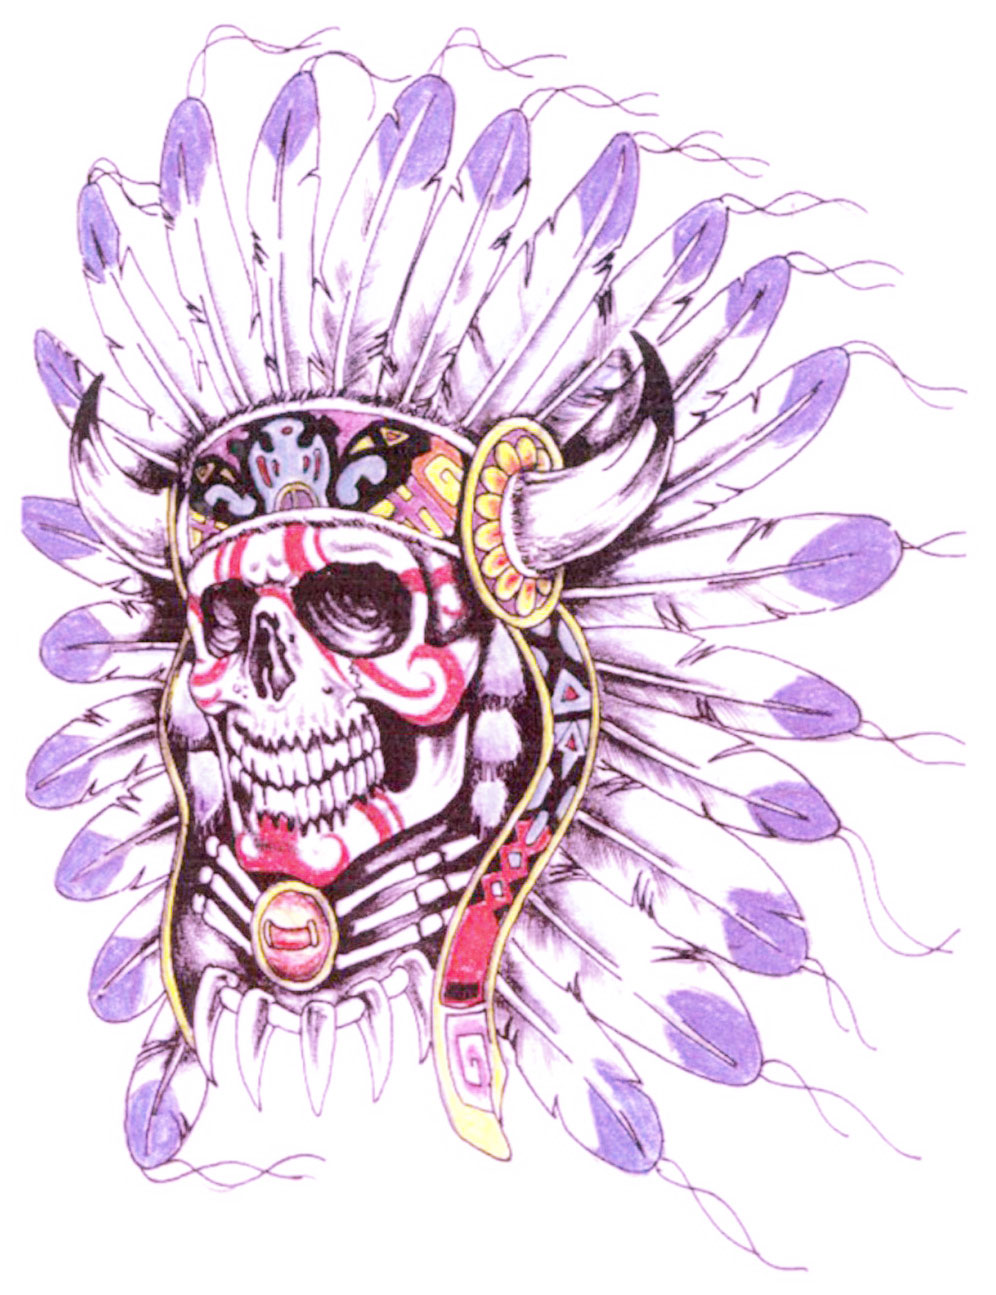 get free drawing and sketching references with video help tribal skull tattoo design free download. Black Bedroom Furniture Sets. Home Design Ideas